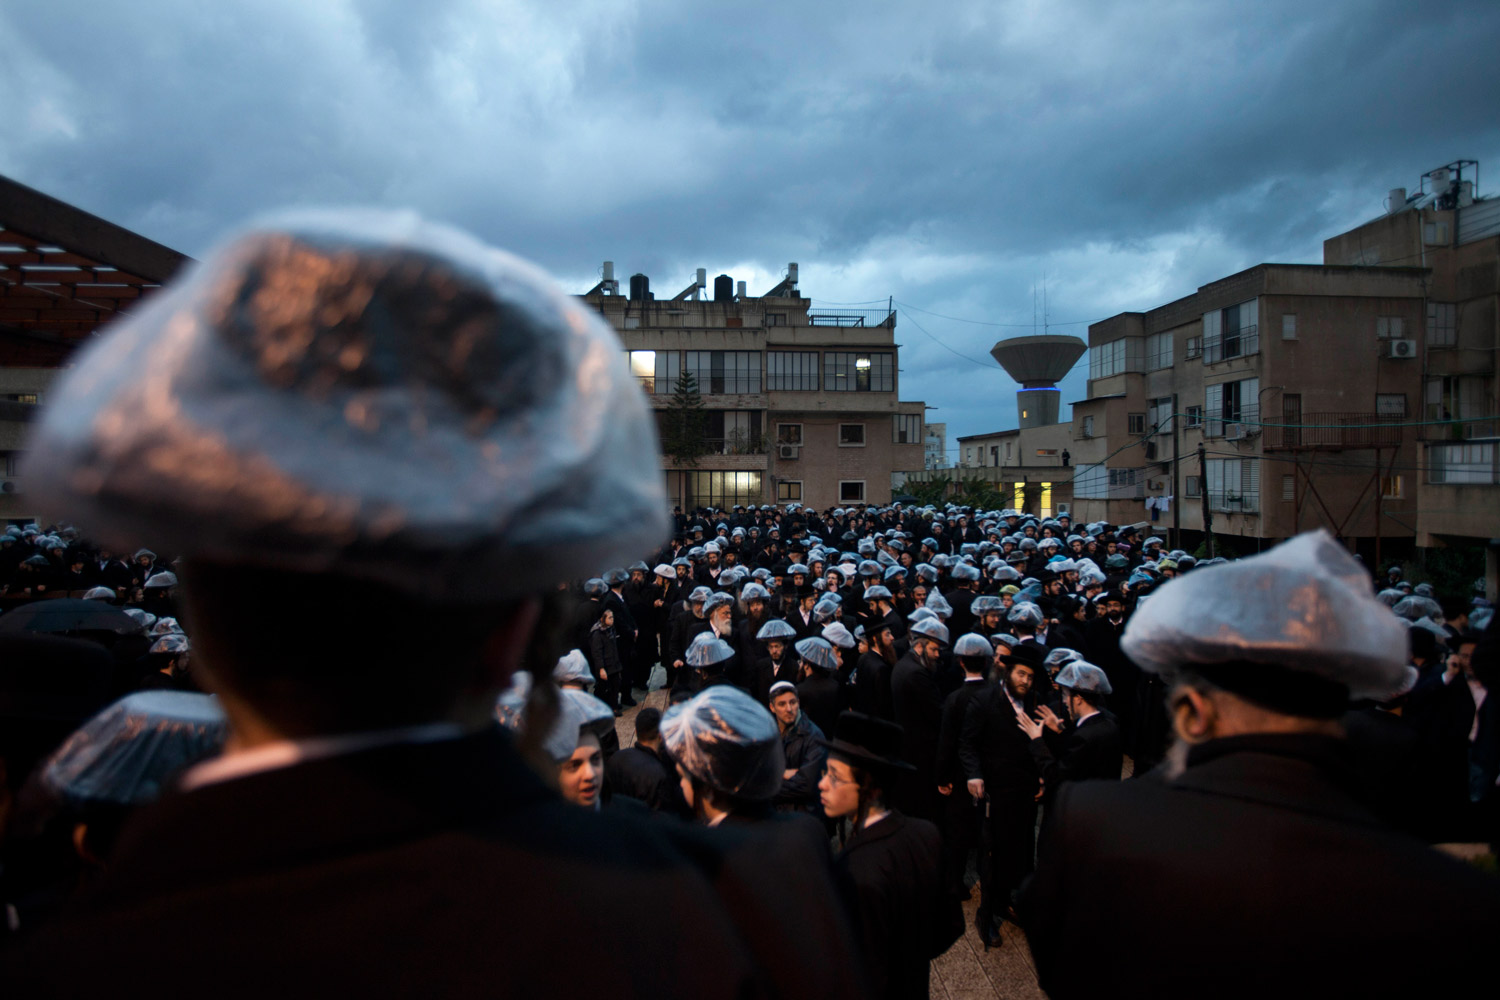 March 1, 2012. Ultra-Orthodox Jewish men carry the body of Rabbi Yaakov Yisachar Ber Rosenbaum from Nadvorna Hasidic rabbinical dynasty during his funeral in the ultra-Orthodox town of Bnei Brak near Tel Aviv. The rabbi was 82 years old.